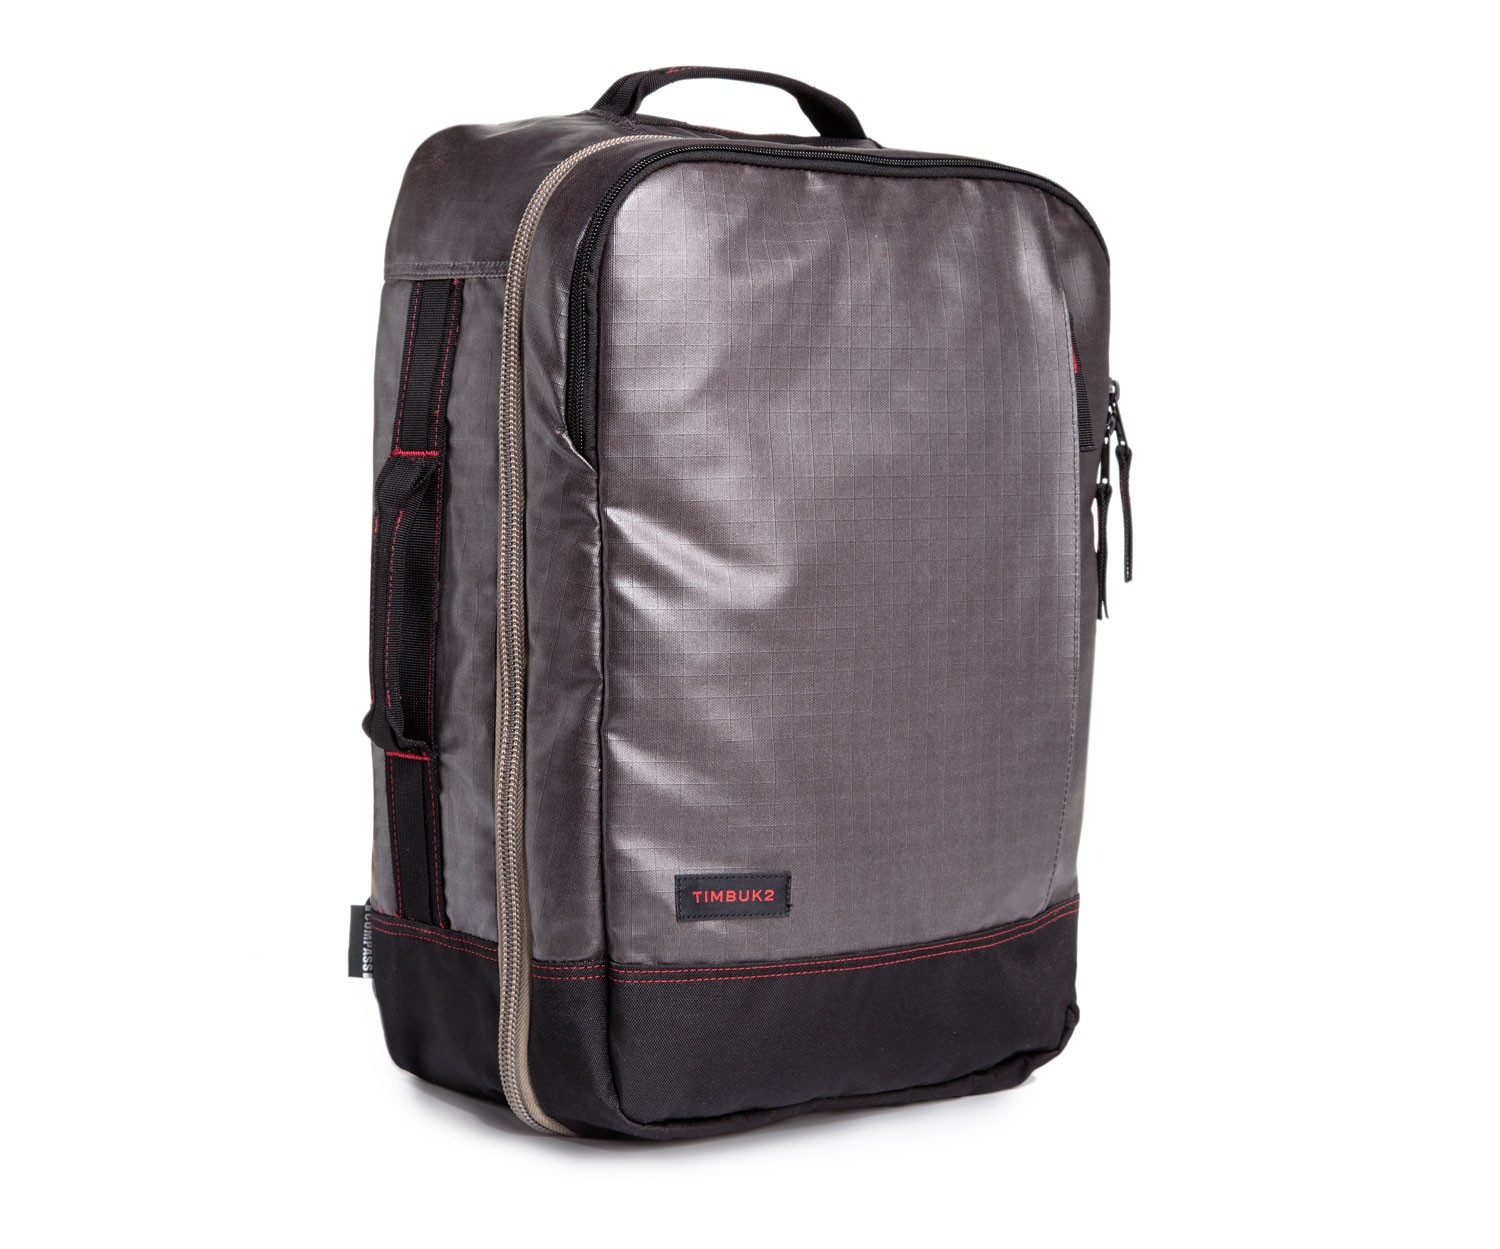 Laptop Backpack Reviews - Crazy Backpacks